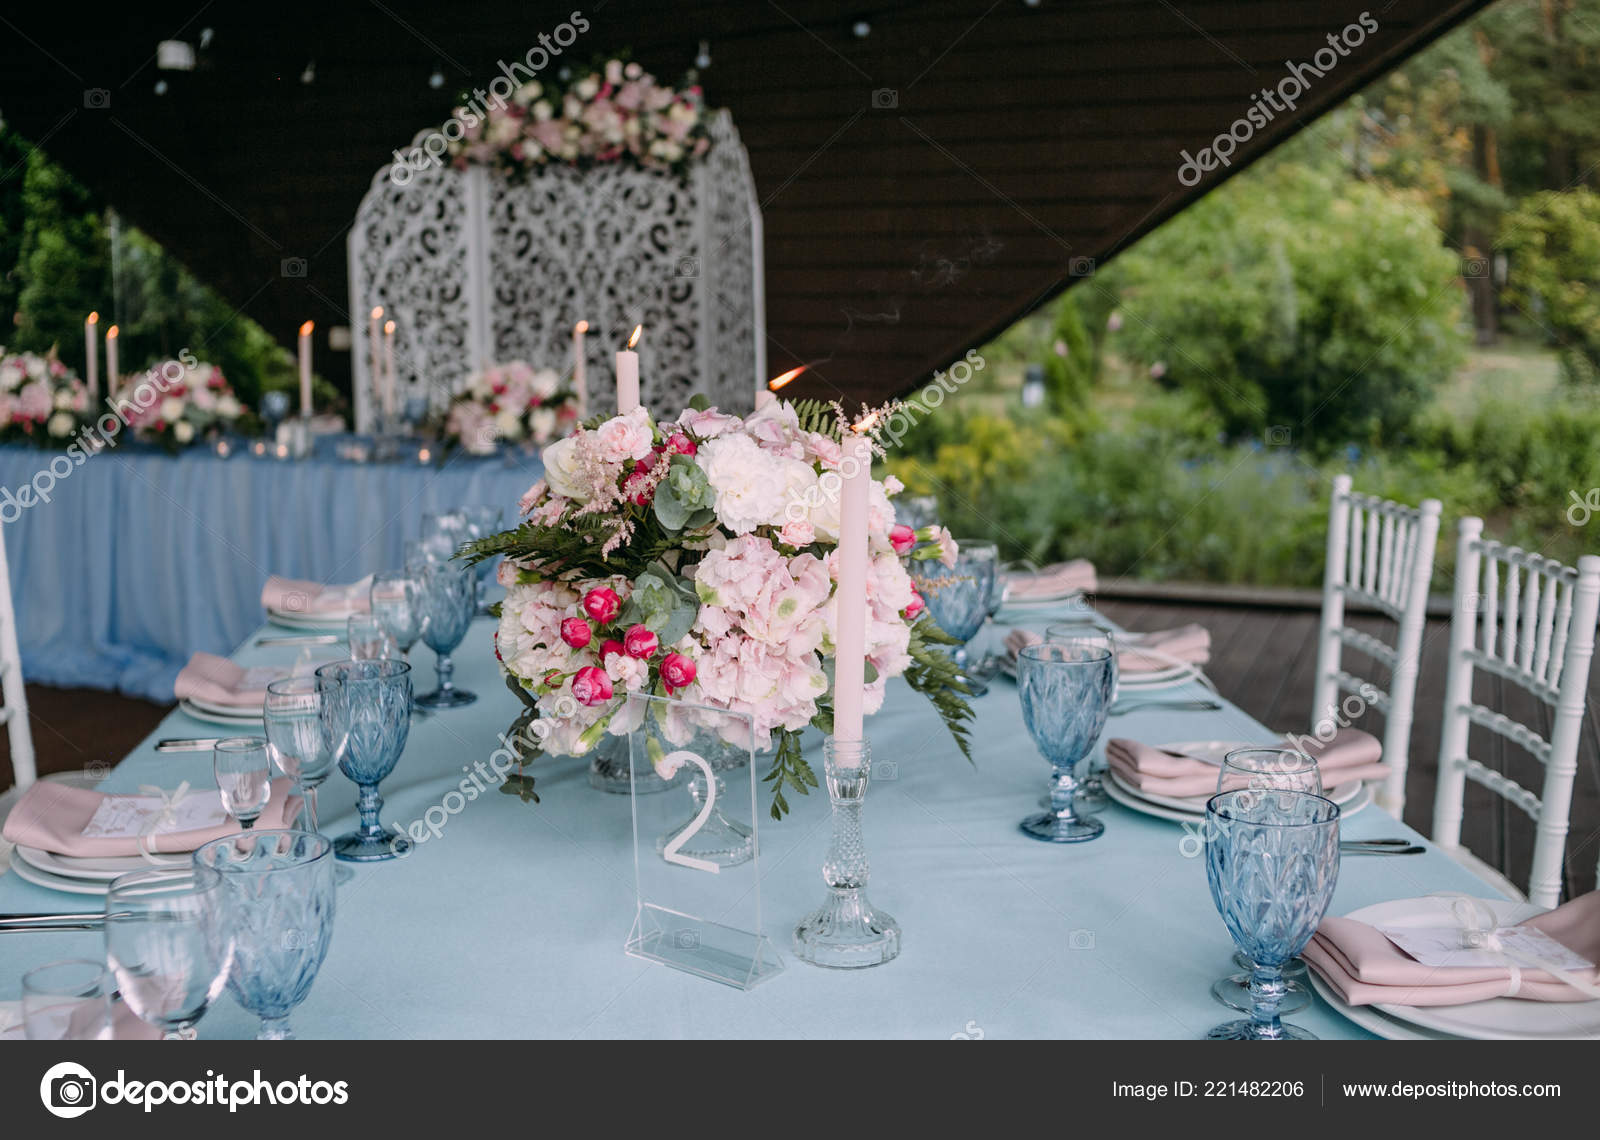 Pink And White Table Decorations  from st4.depositphotos.com